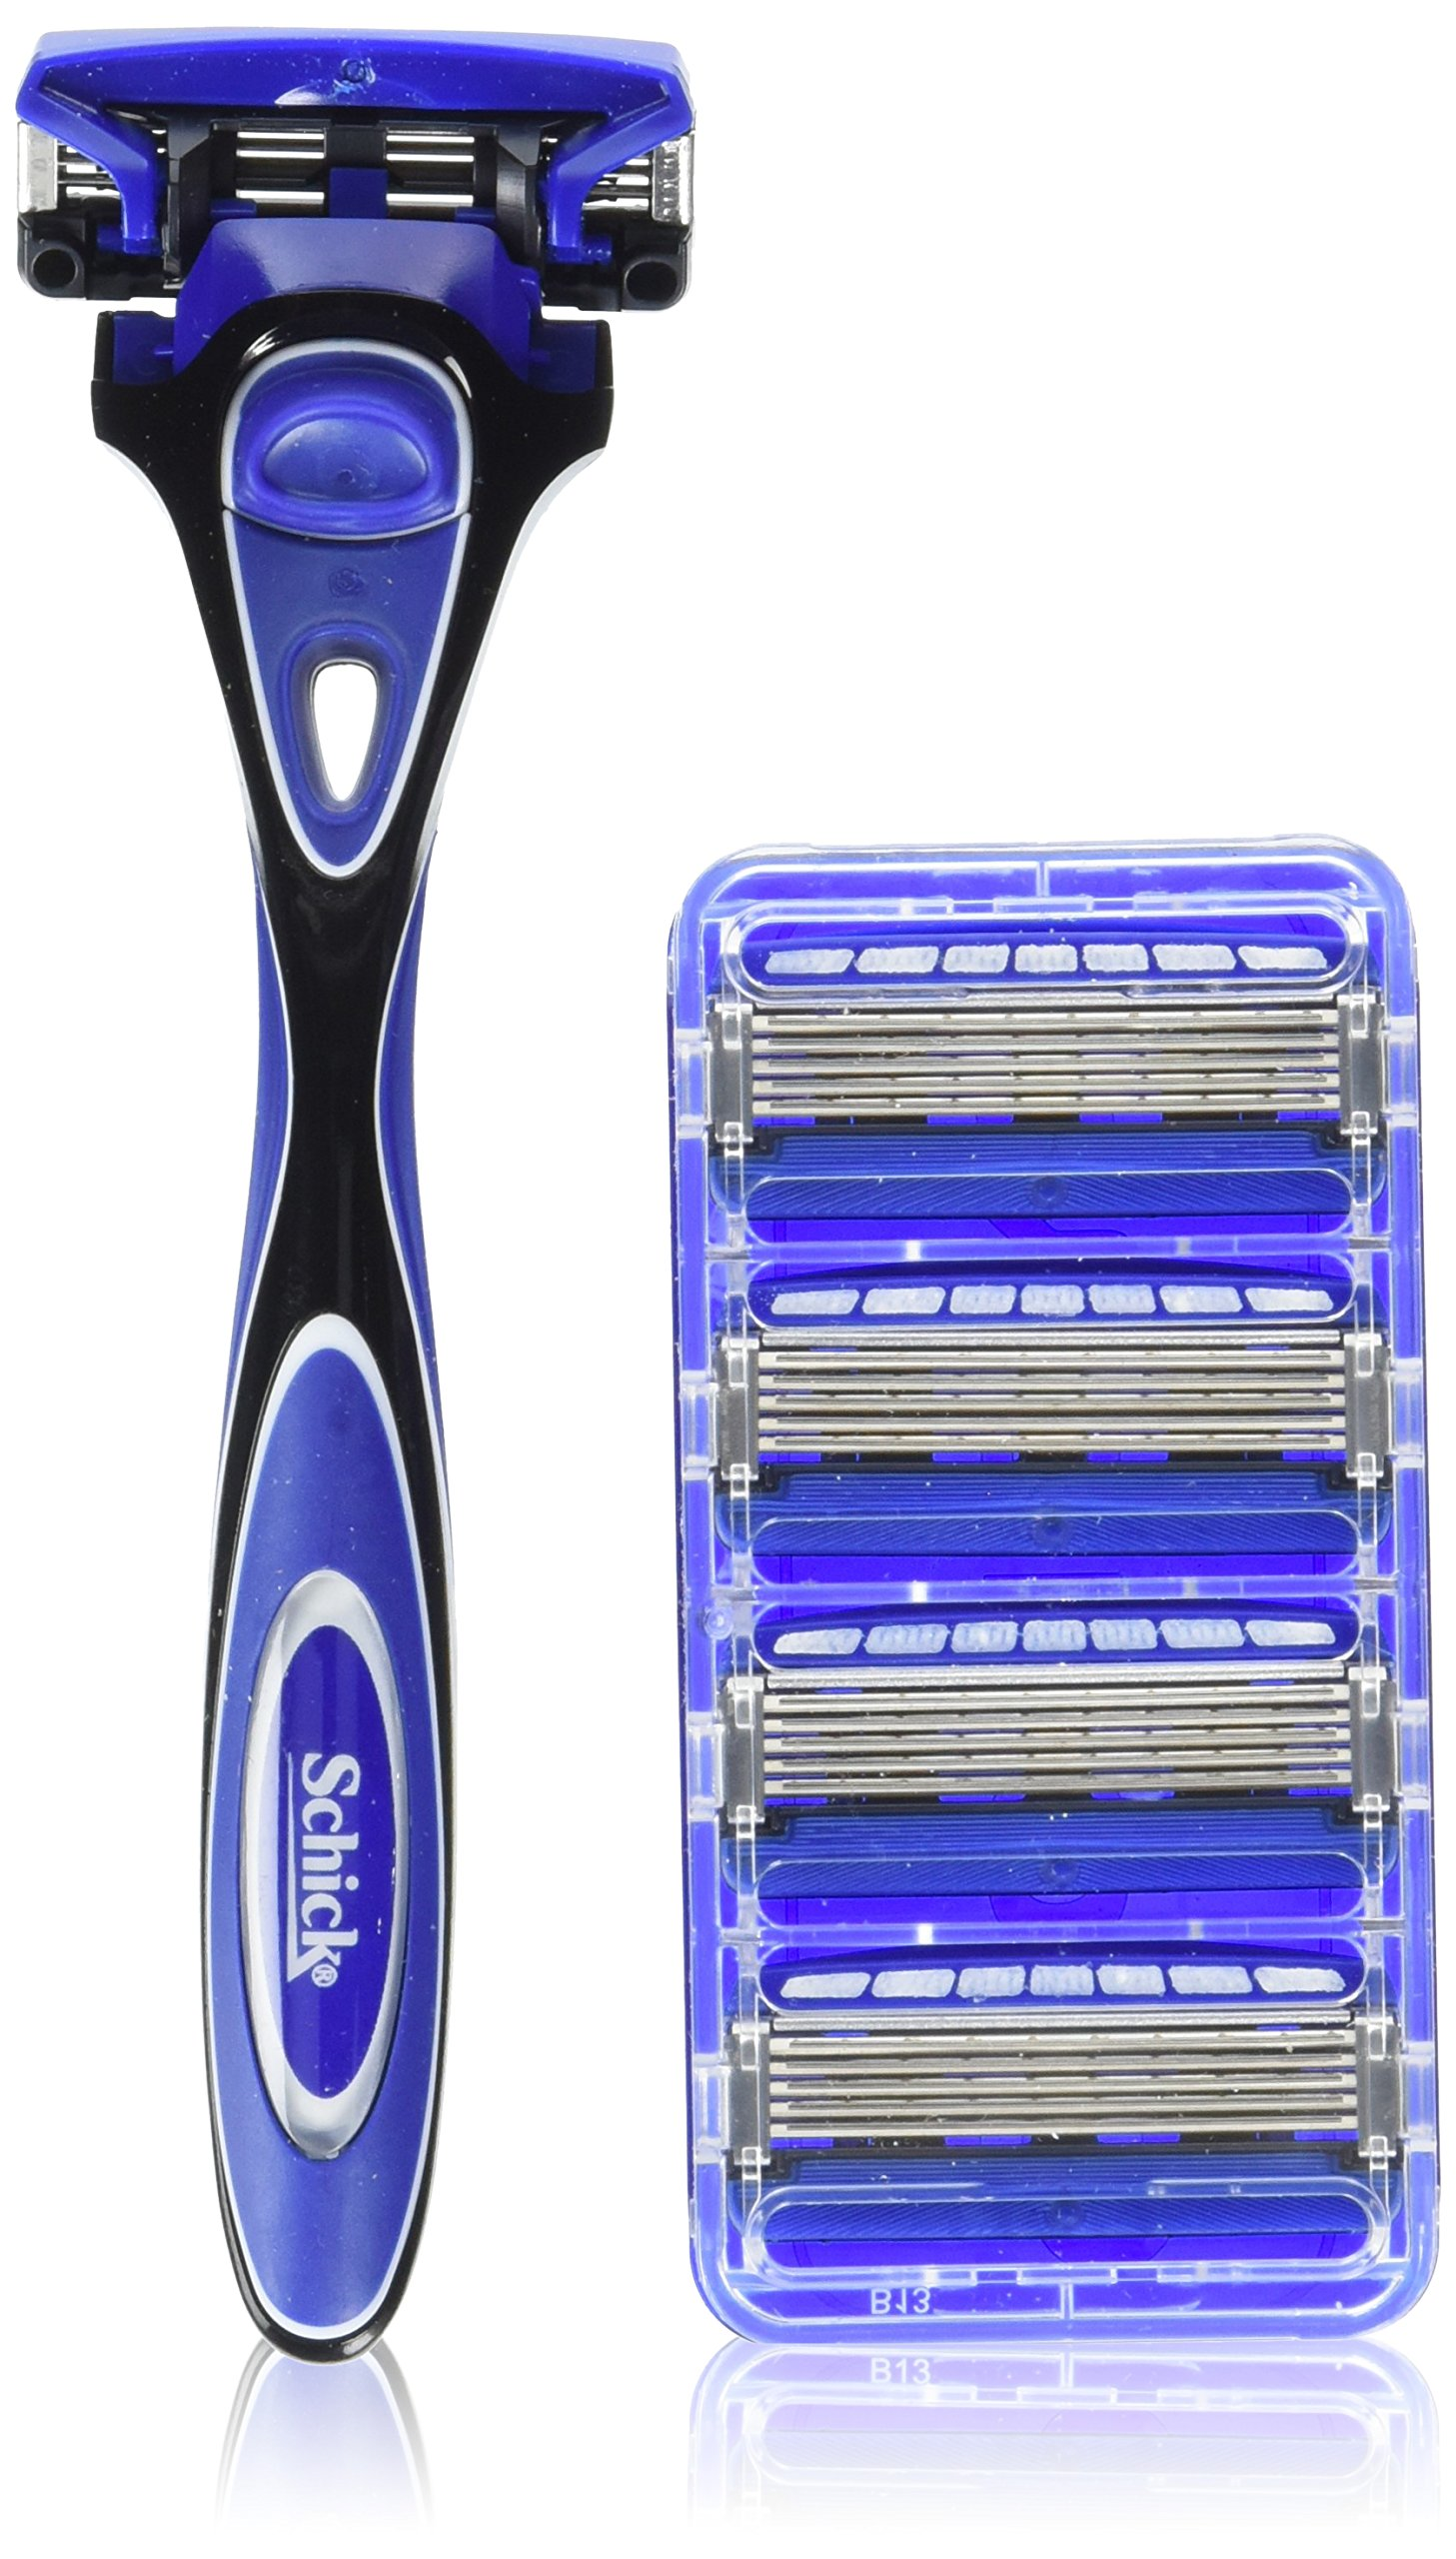 Schick Hydro 5 Shaving Starter Gift Set for Men with 1 - Hydro 5 Razor for Men and 5 - Hydro 5 Razor Blade Refills for Men